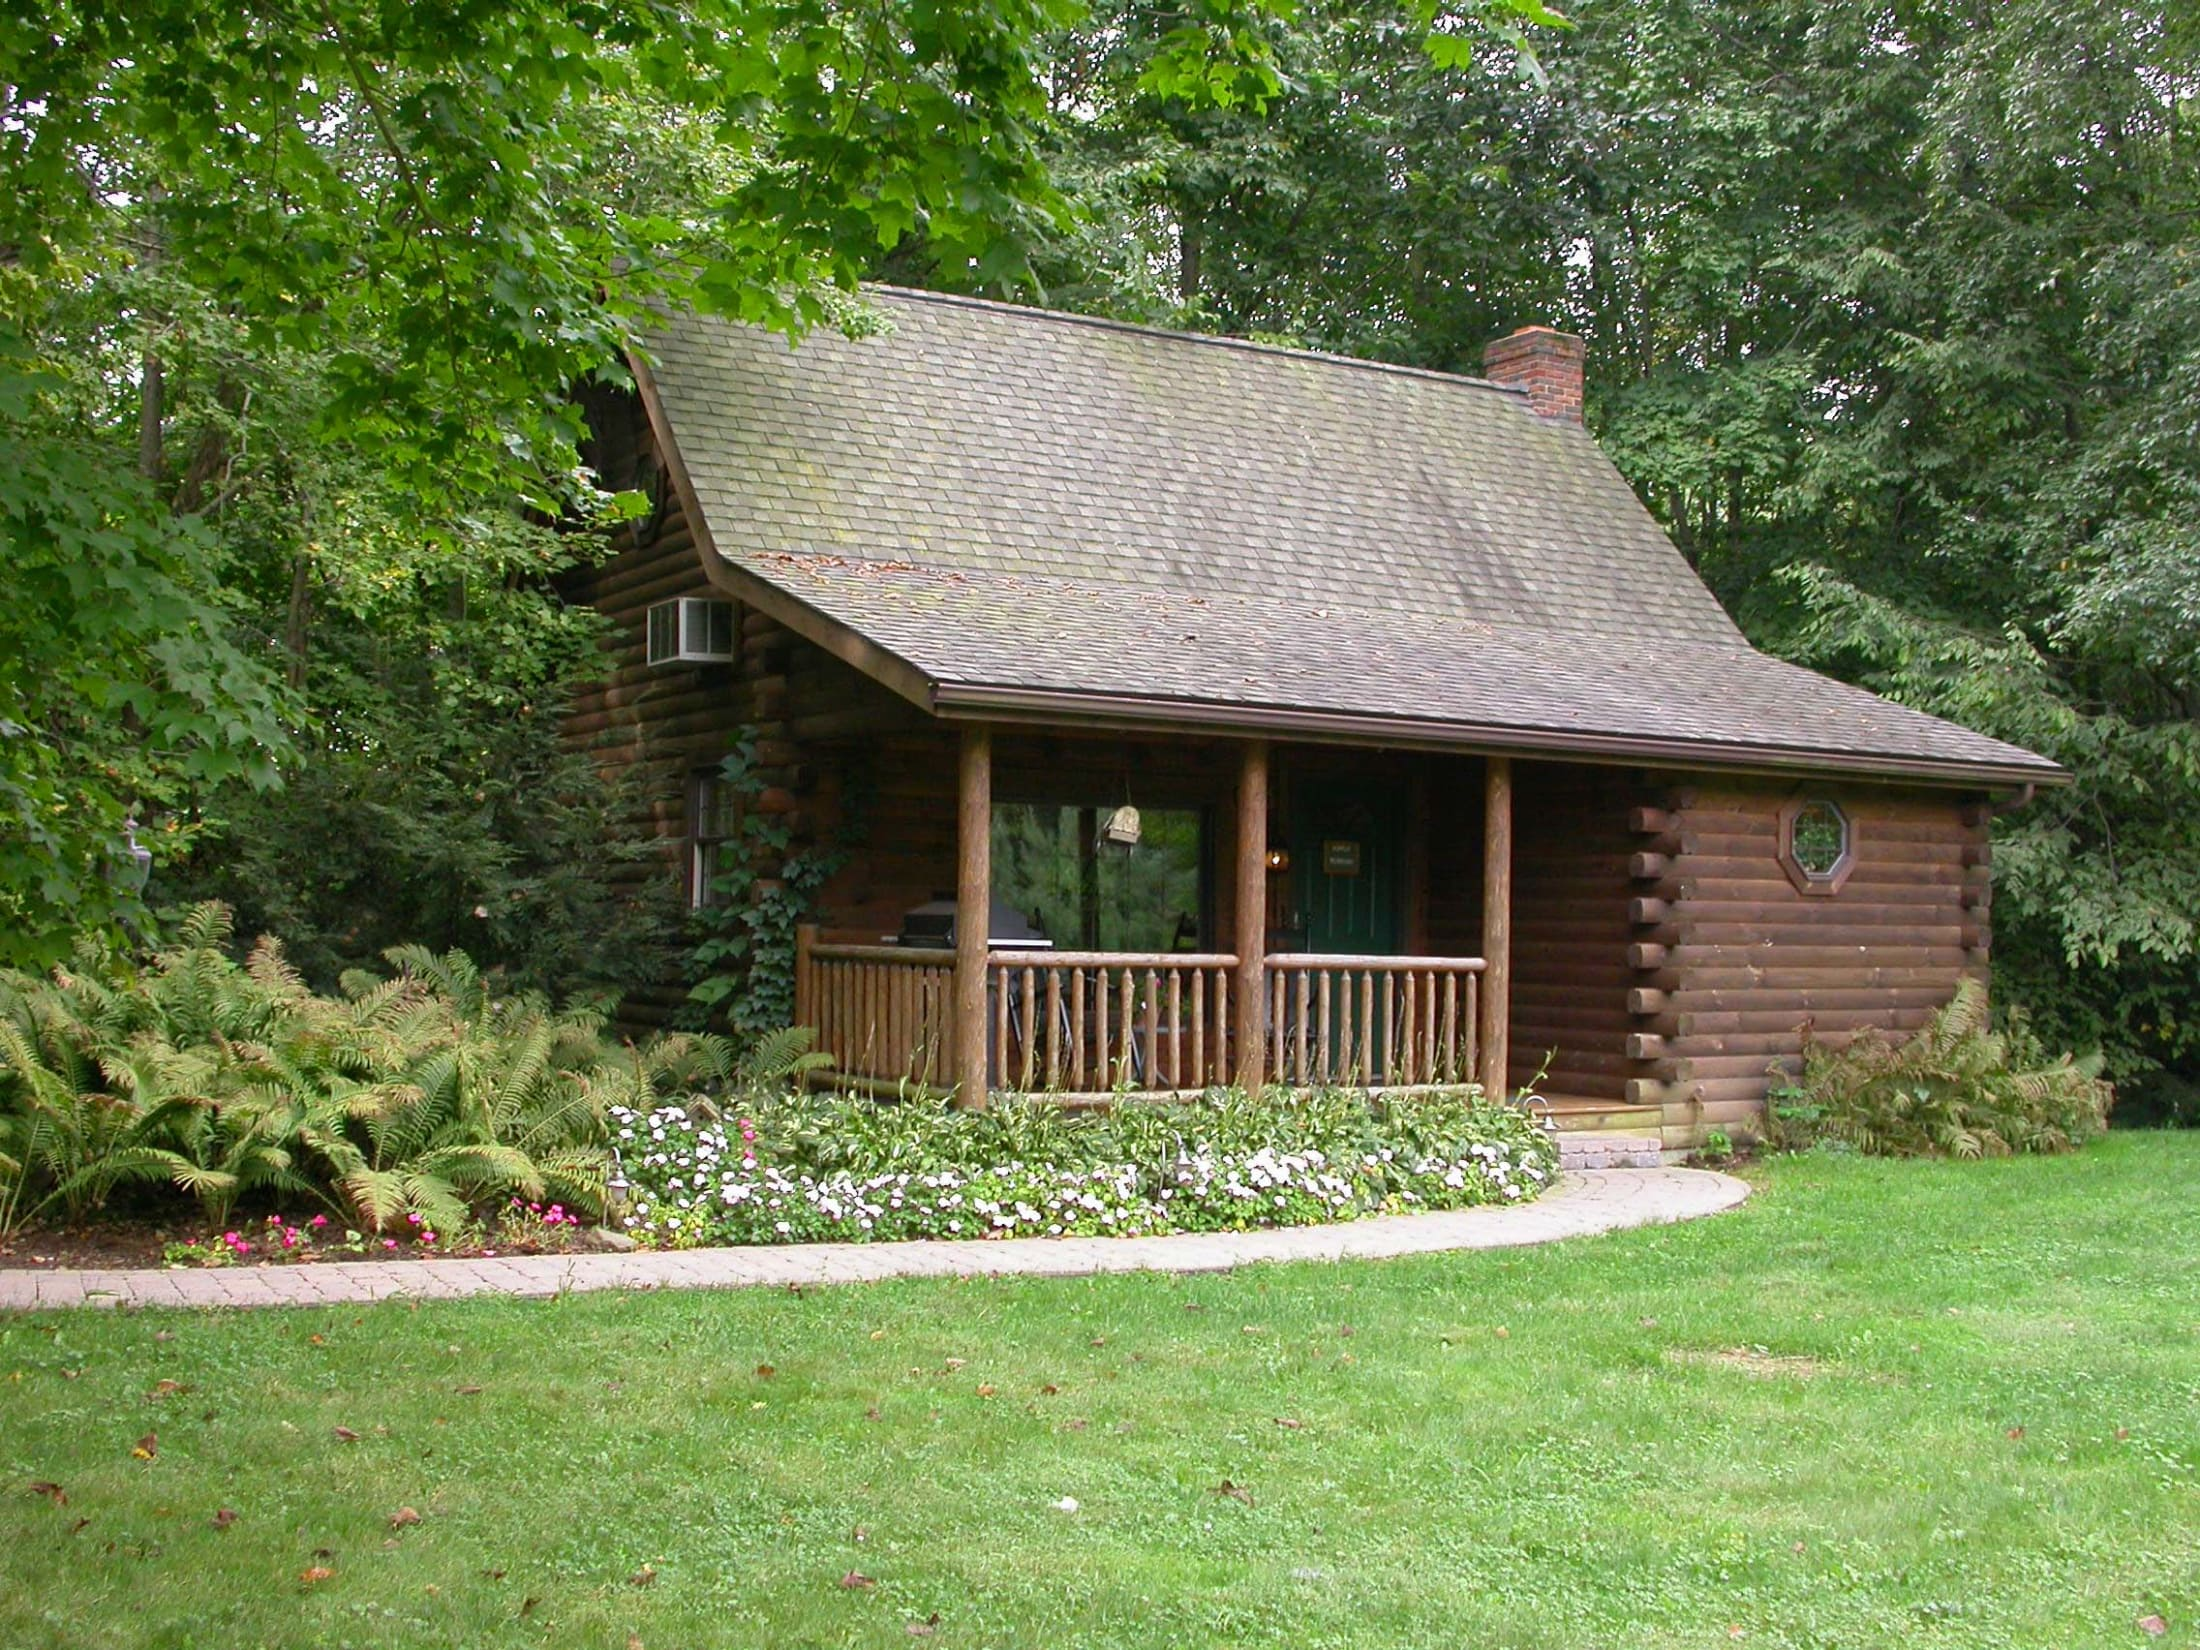 Cricket Hill Cabins | Millersburg OH | Amish Country